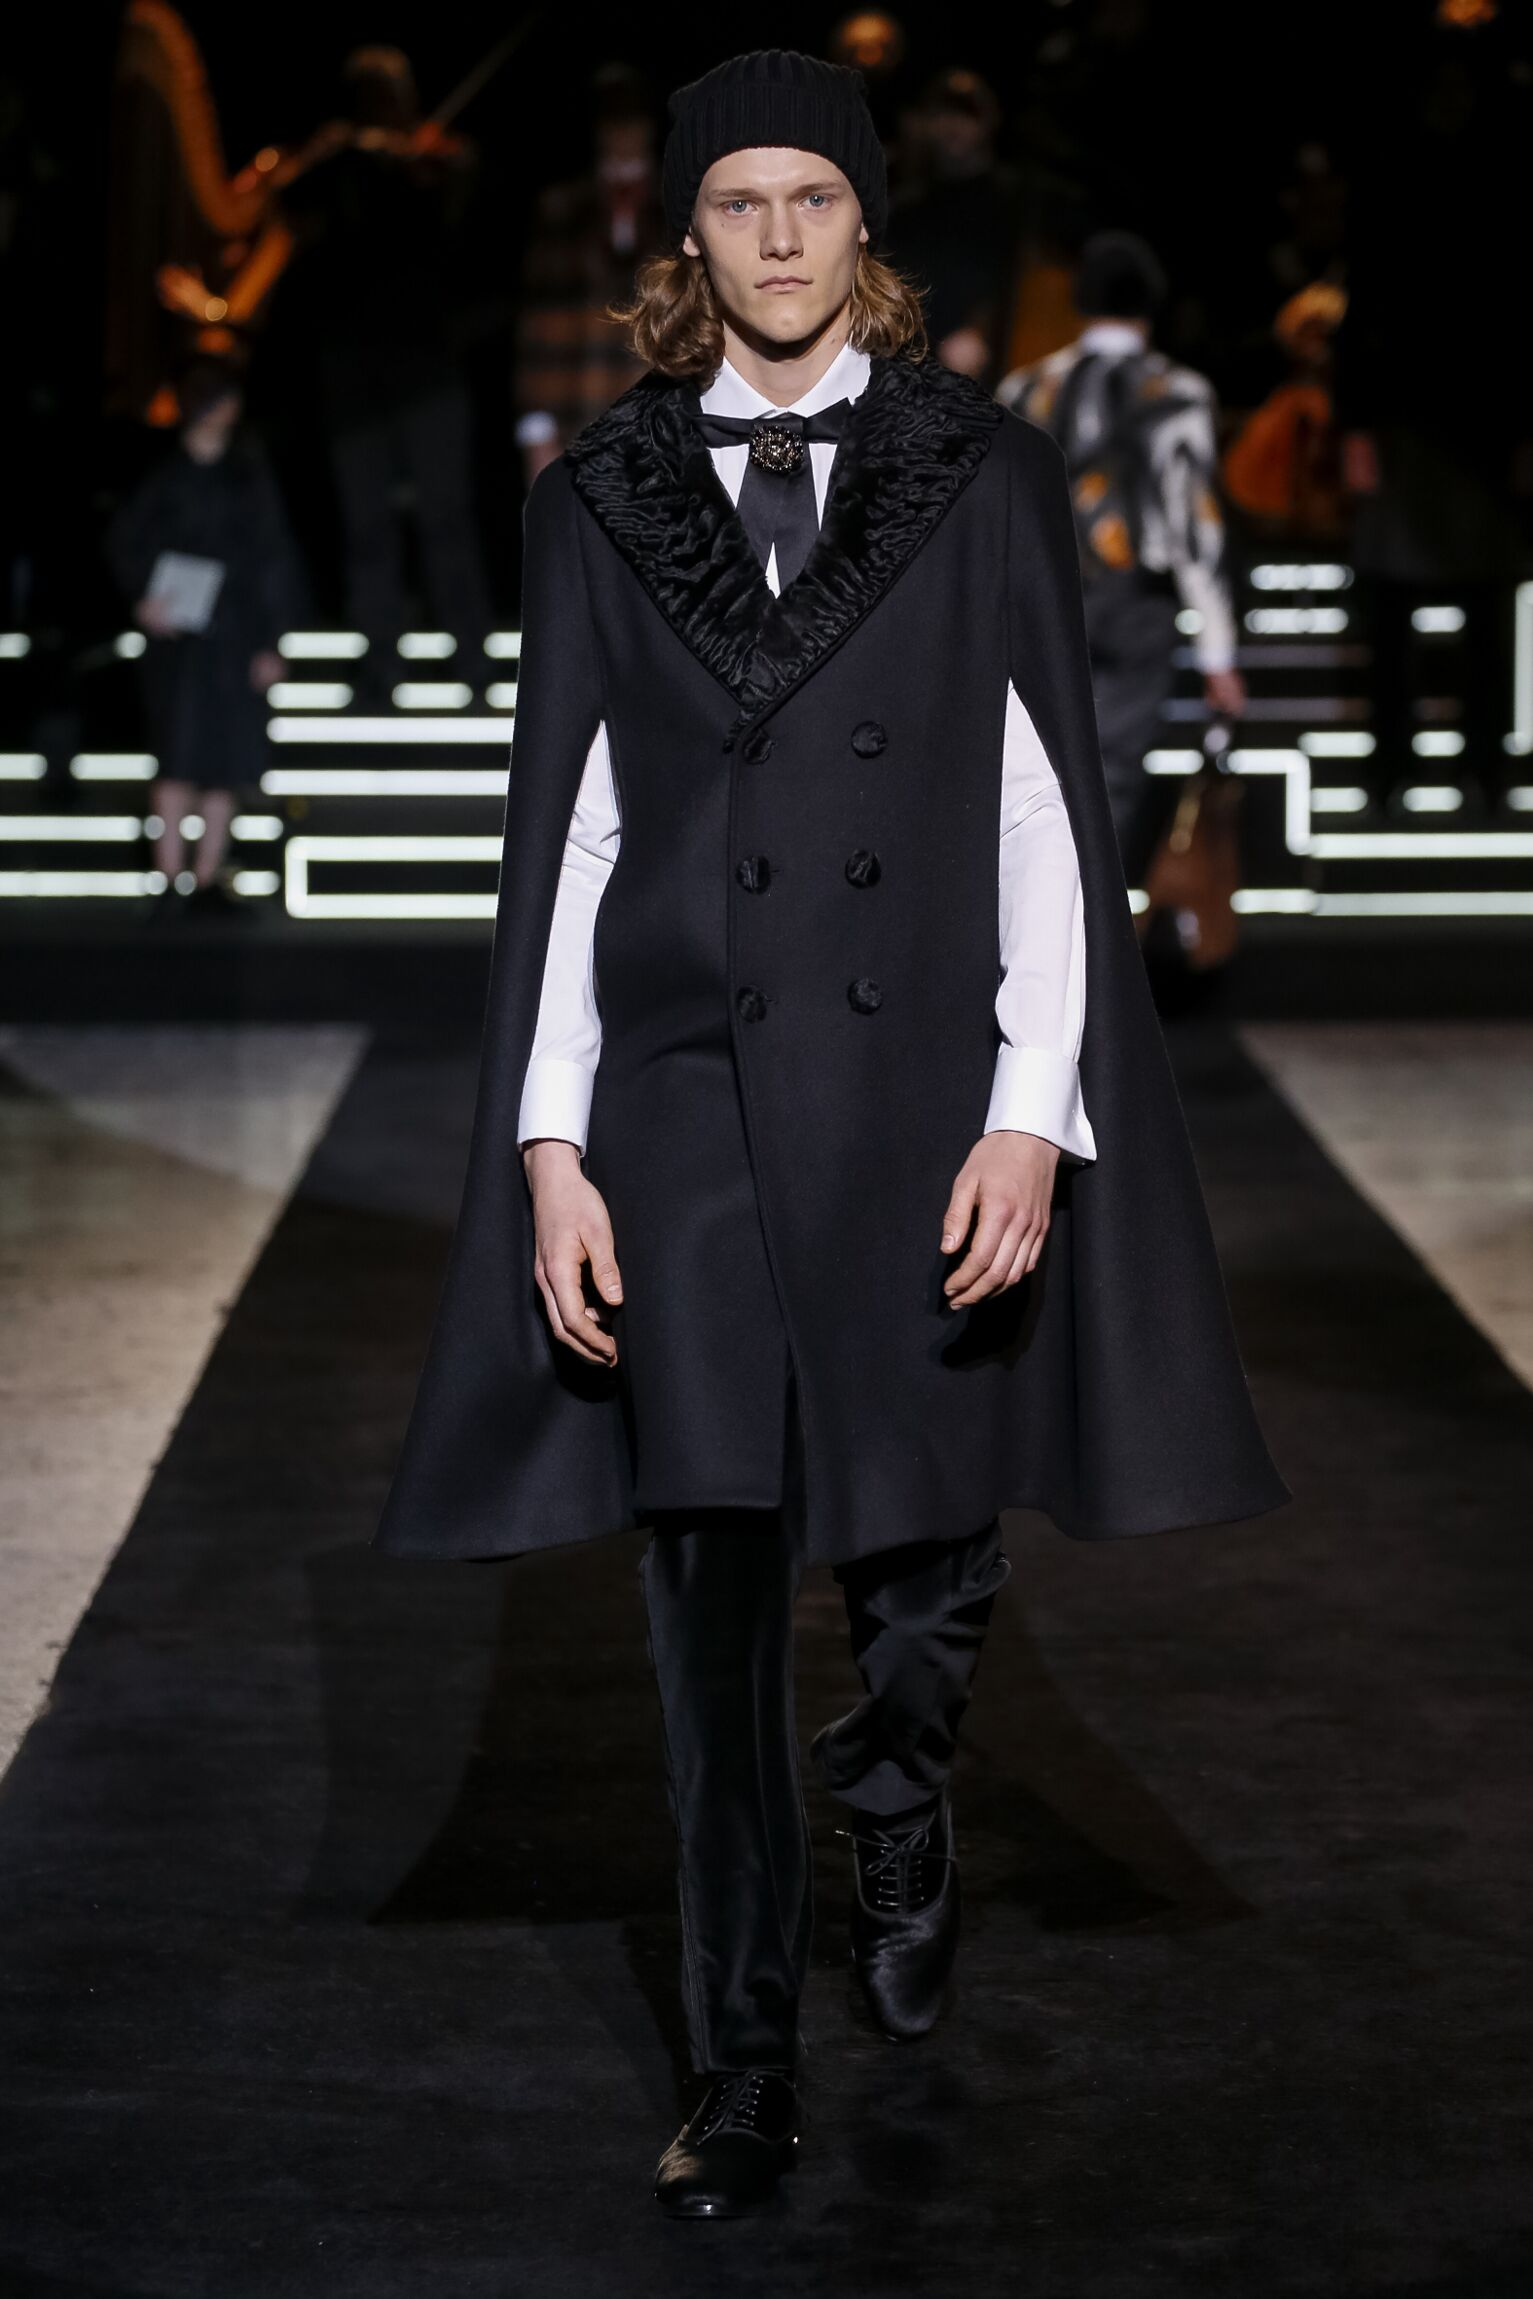 Daks Fall Winter 2016 Mens Milan Fashion Week